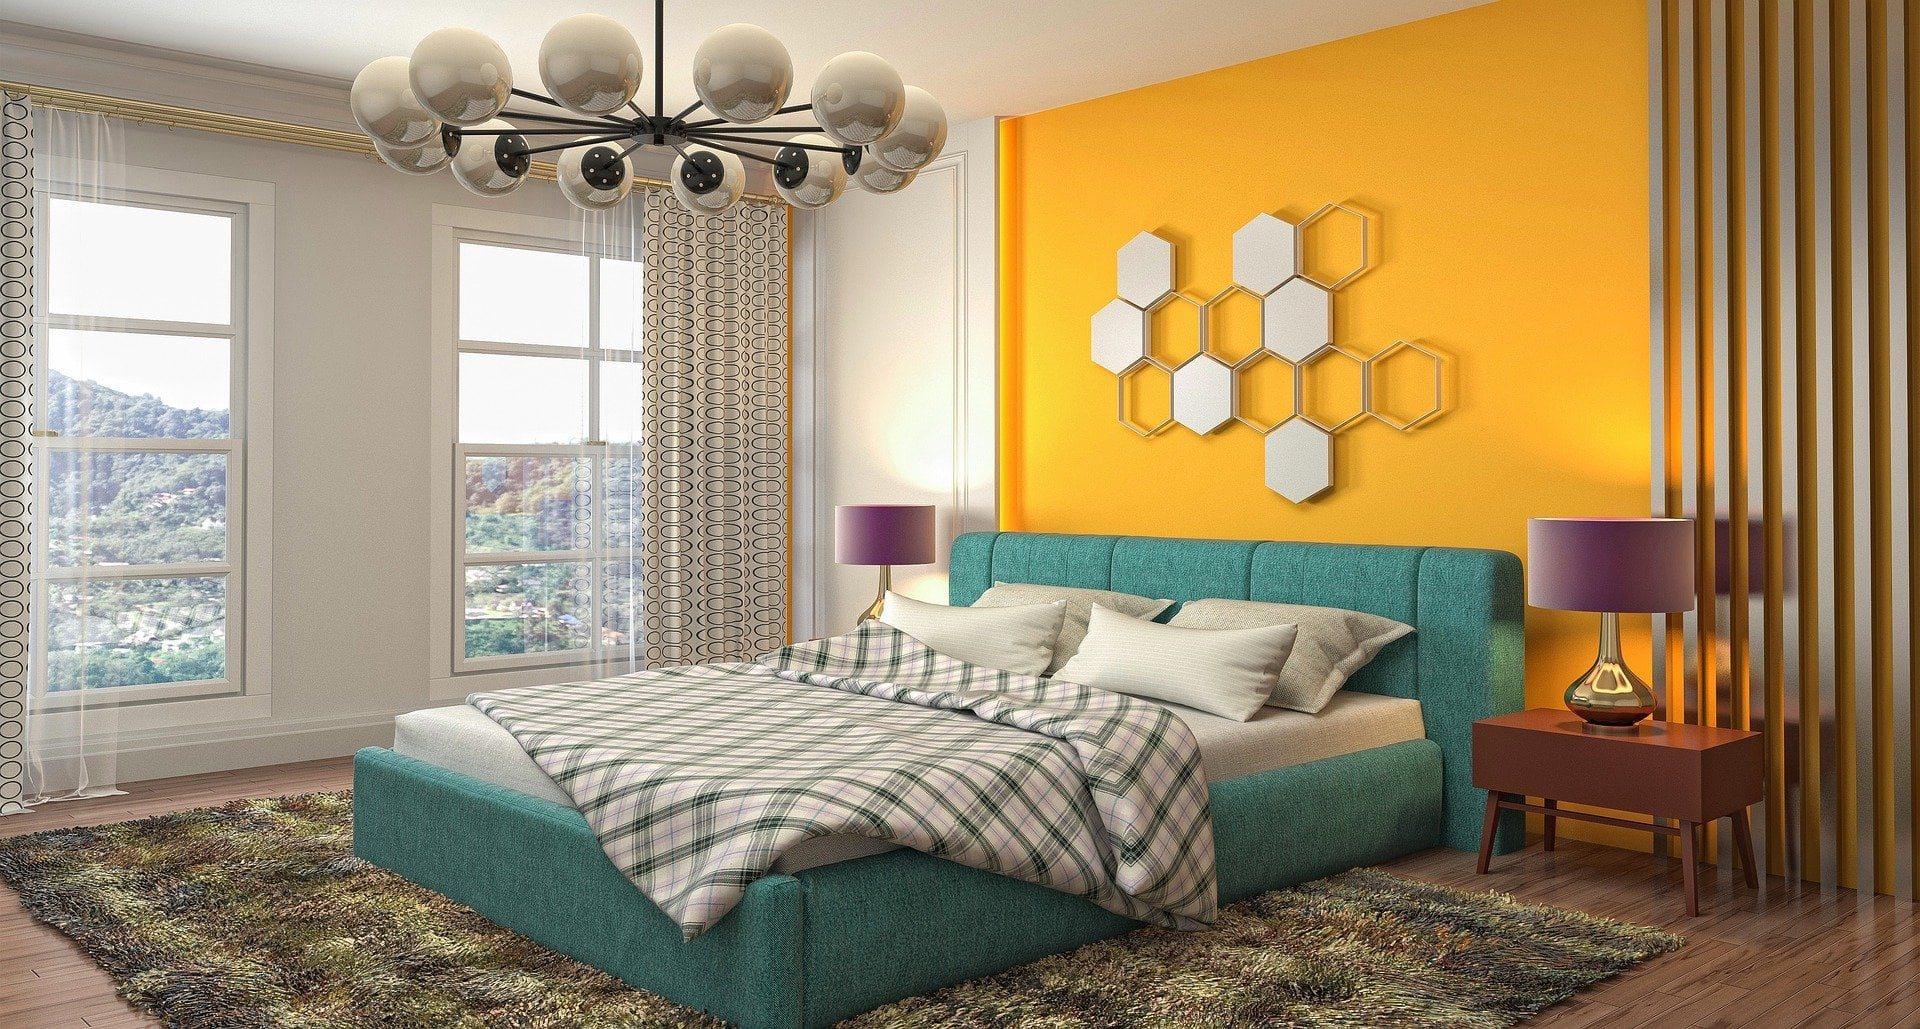 Color Curtains Go With Yellow Walls, What Colour Curtains Go With Yellow Walls